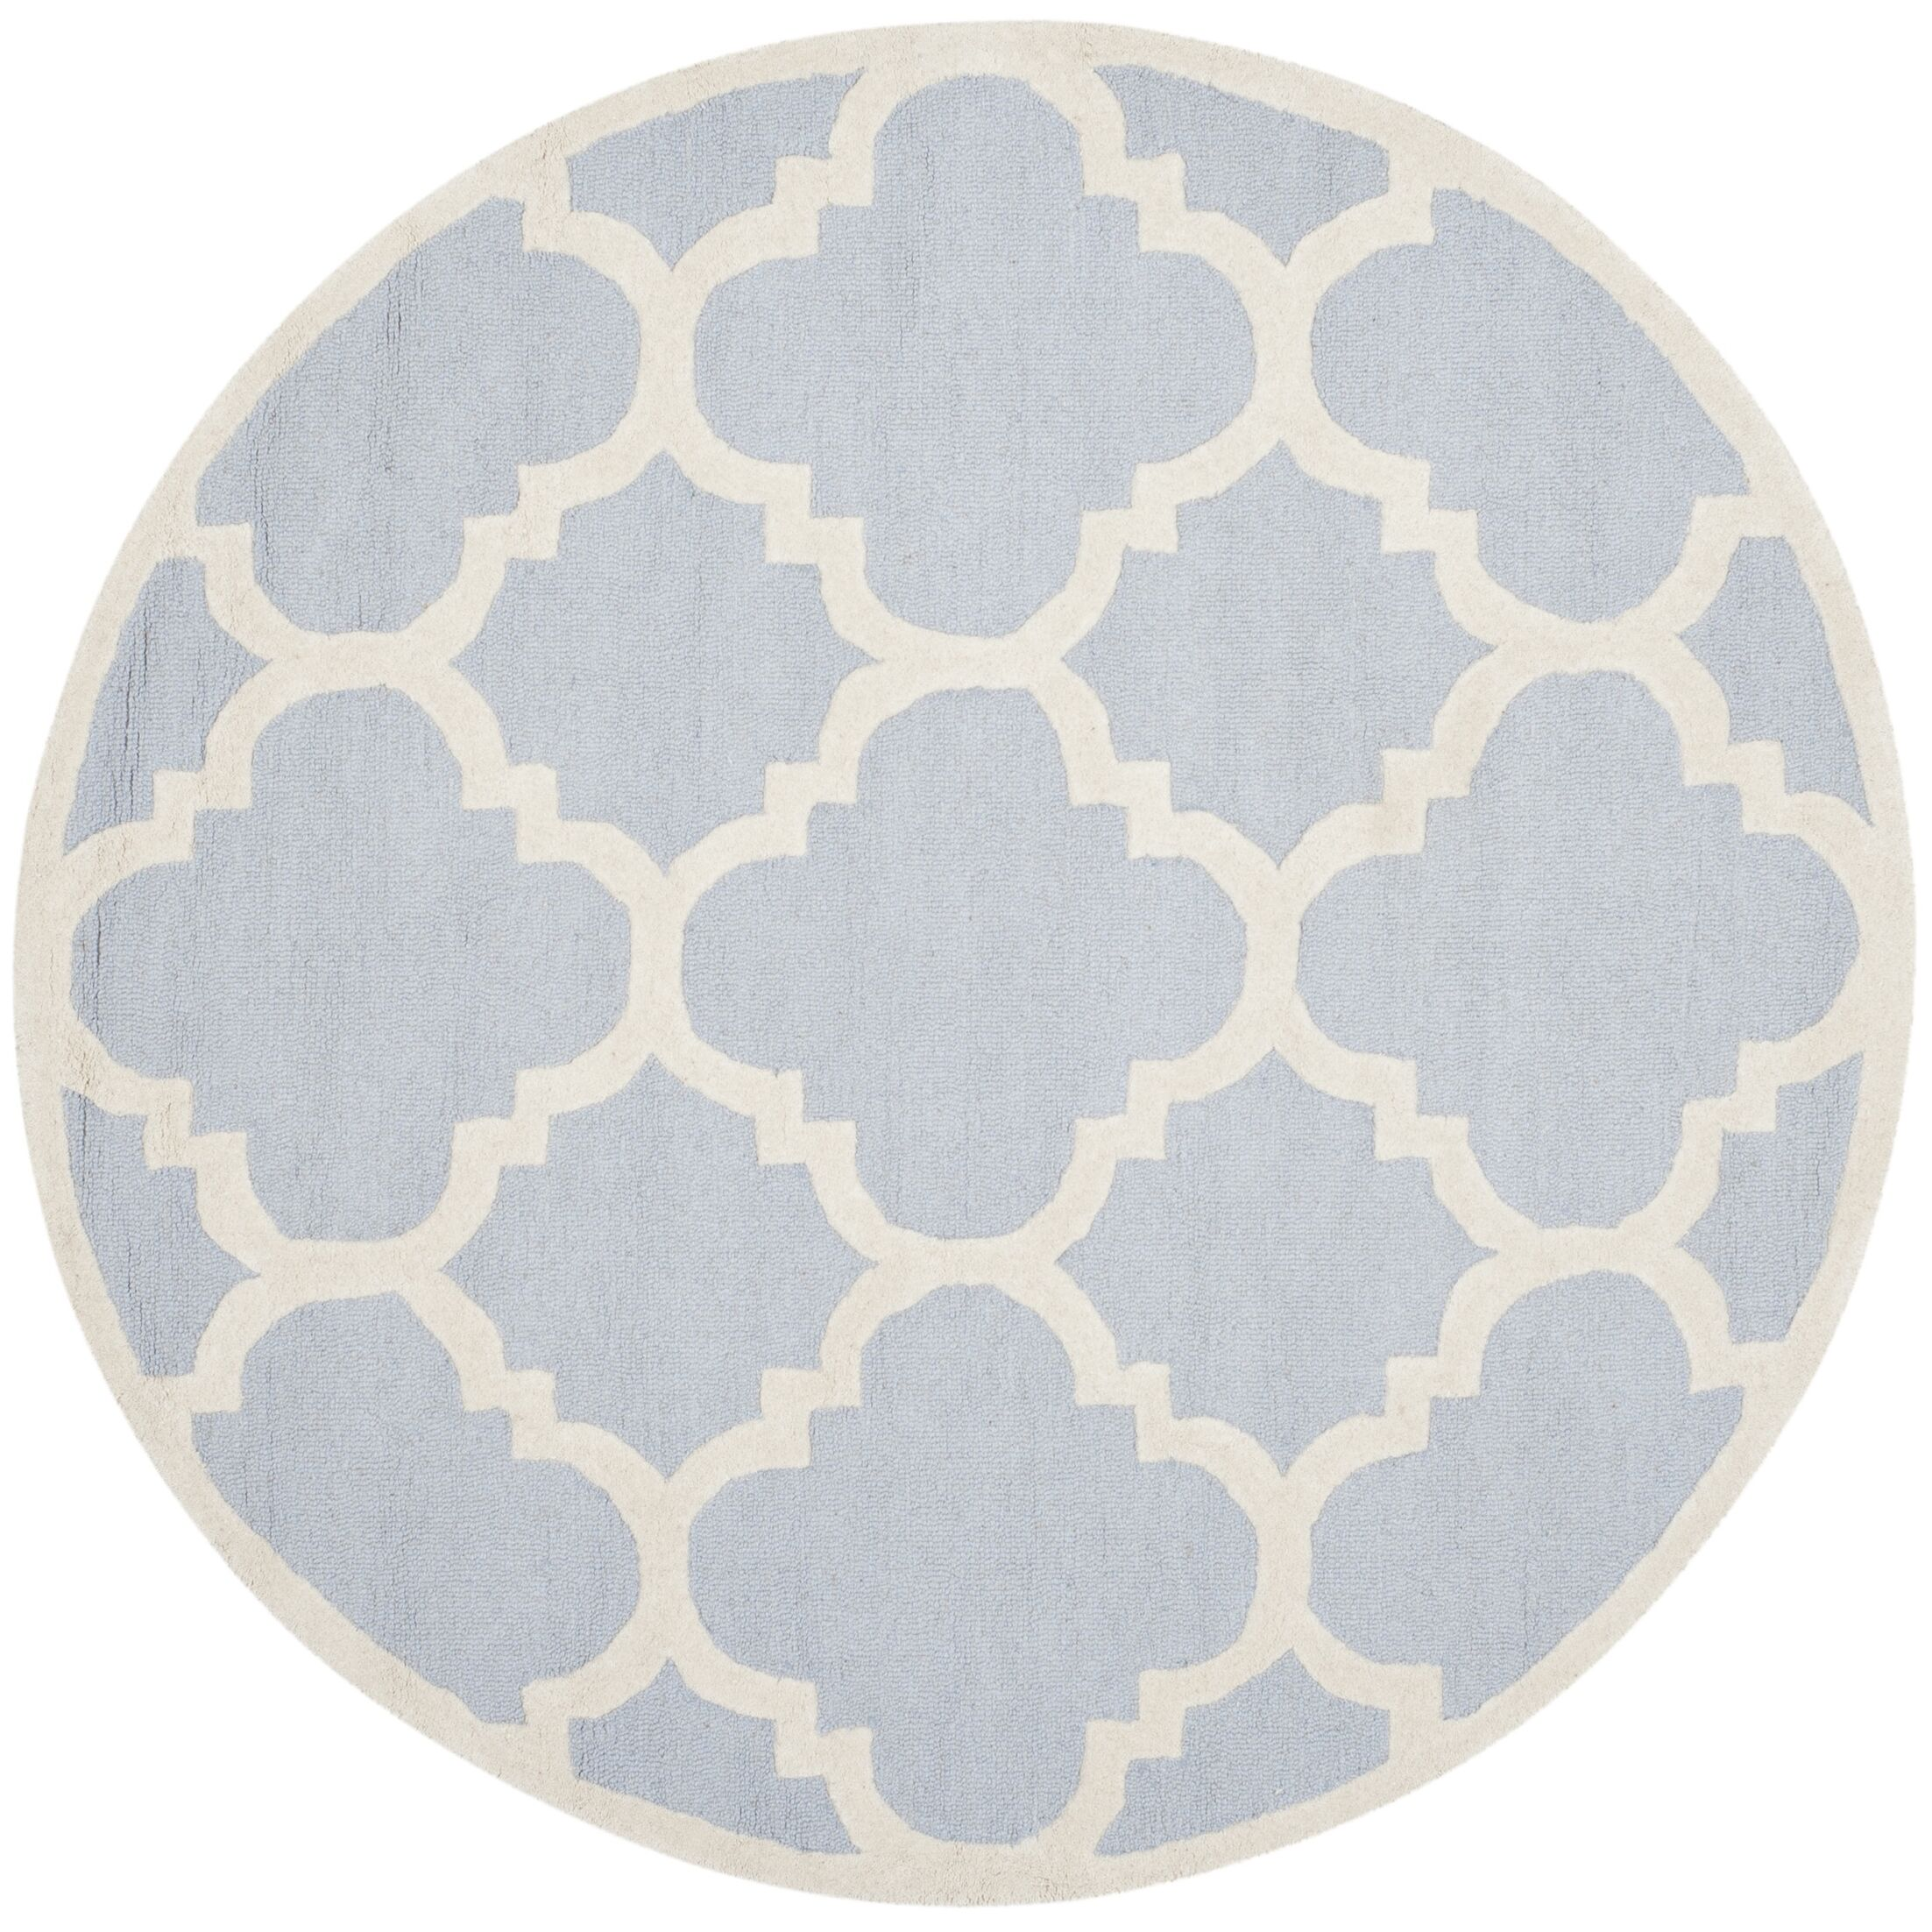 Charlenne Hand-Tufted Light Blue/Ivory Area Rug Rug Size: Round 6'